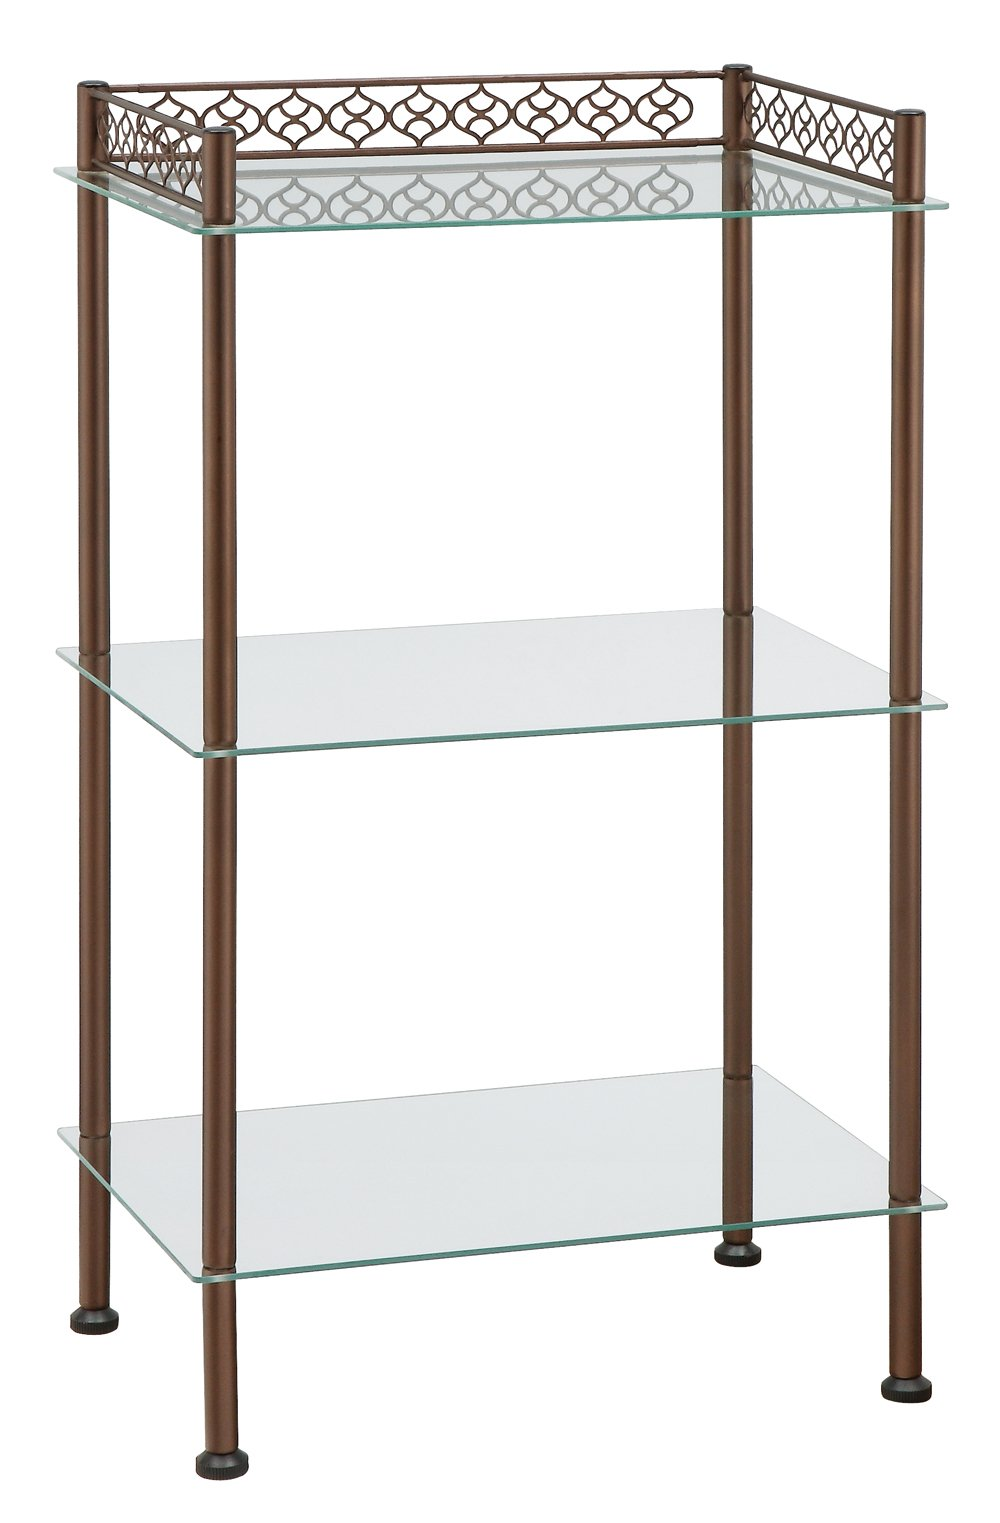 Neu Home 3-Tier Free Standing Tempered Glass Storage Tower with Bronze Finish